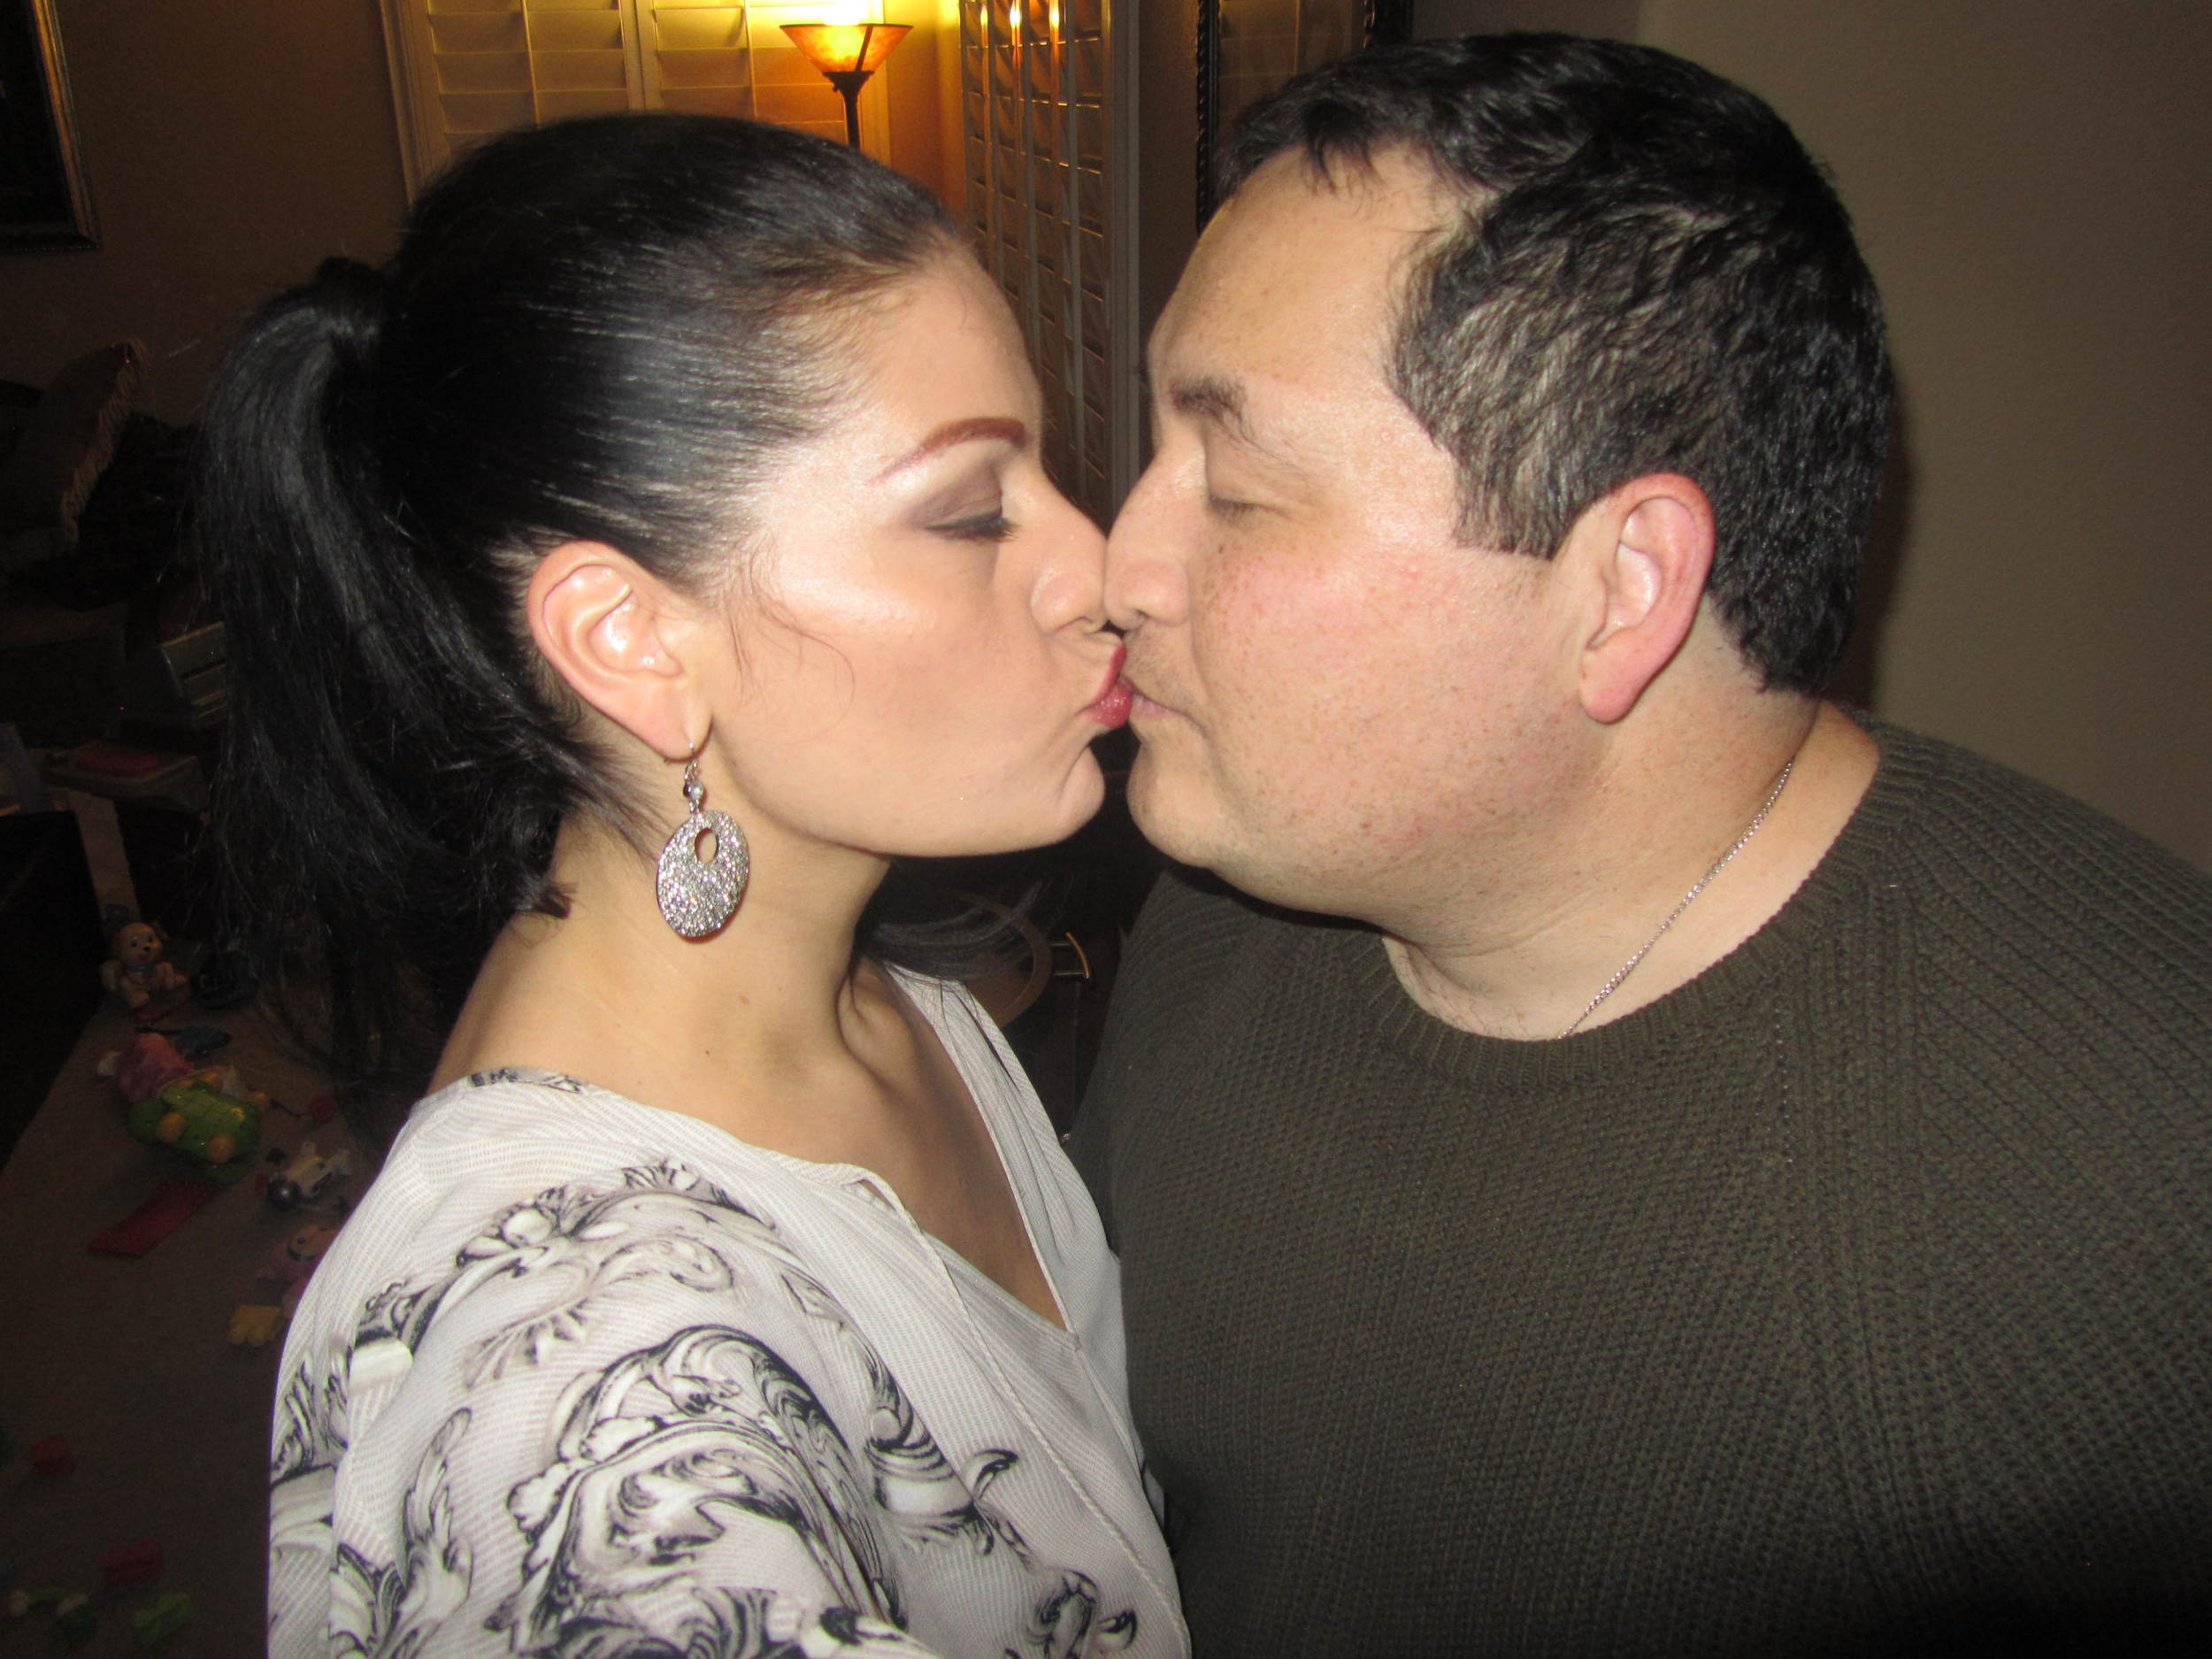 No matter who's wedding I am planning, I always make time to kiss the guy crazy enough to marry me!